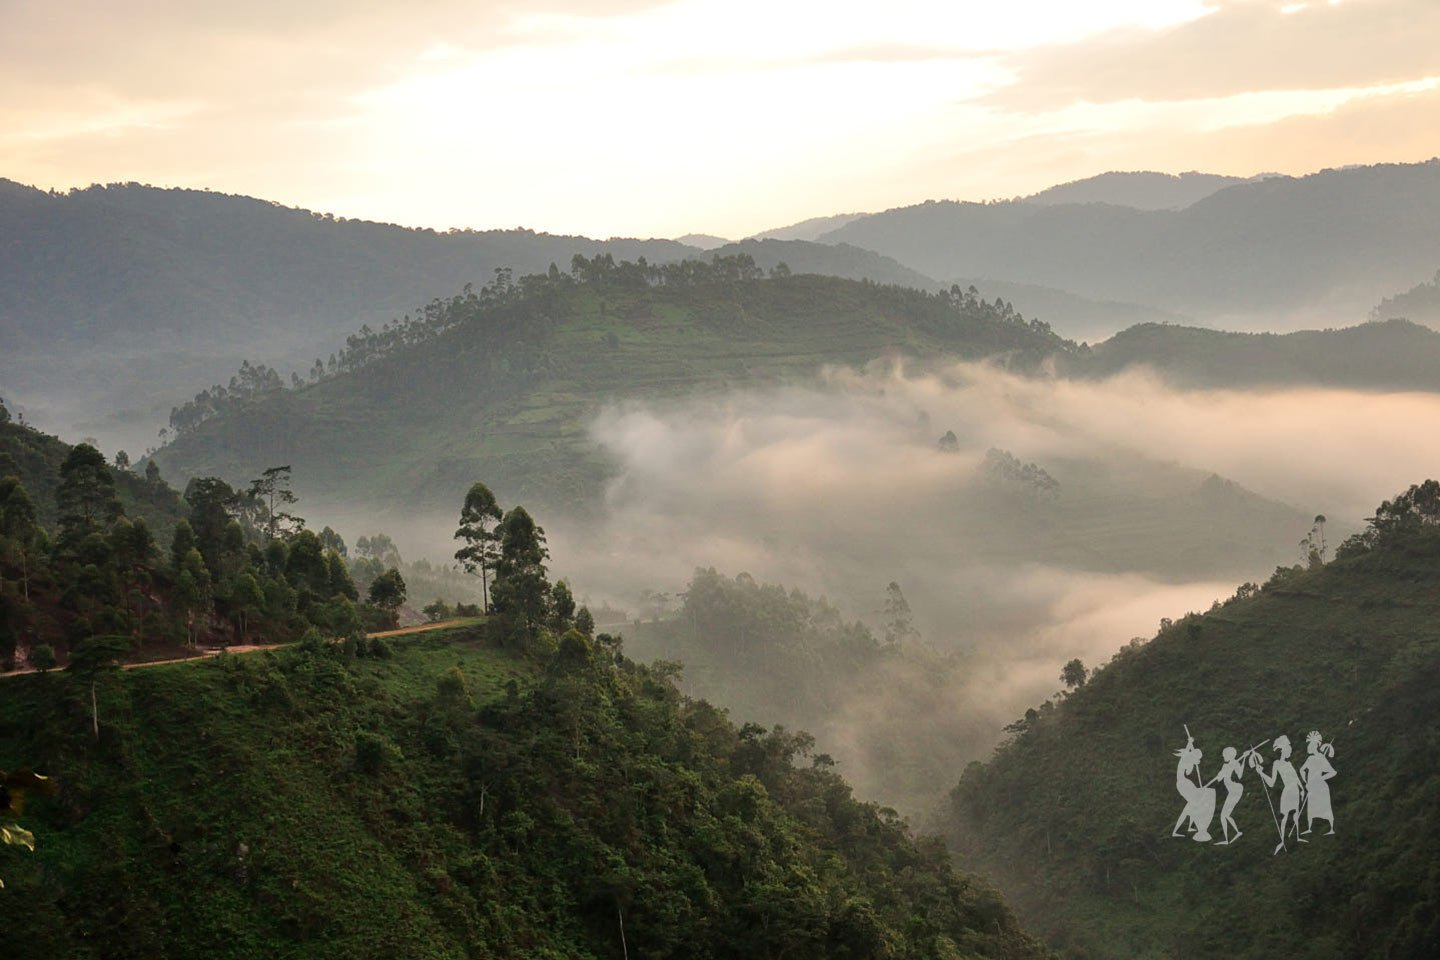 Day 2: Road Trip to Bwindi Impenetrable N.P